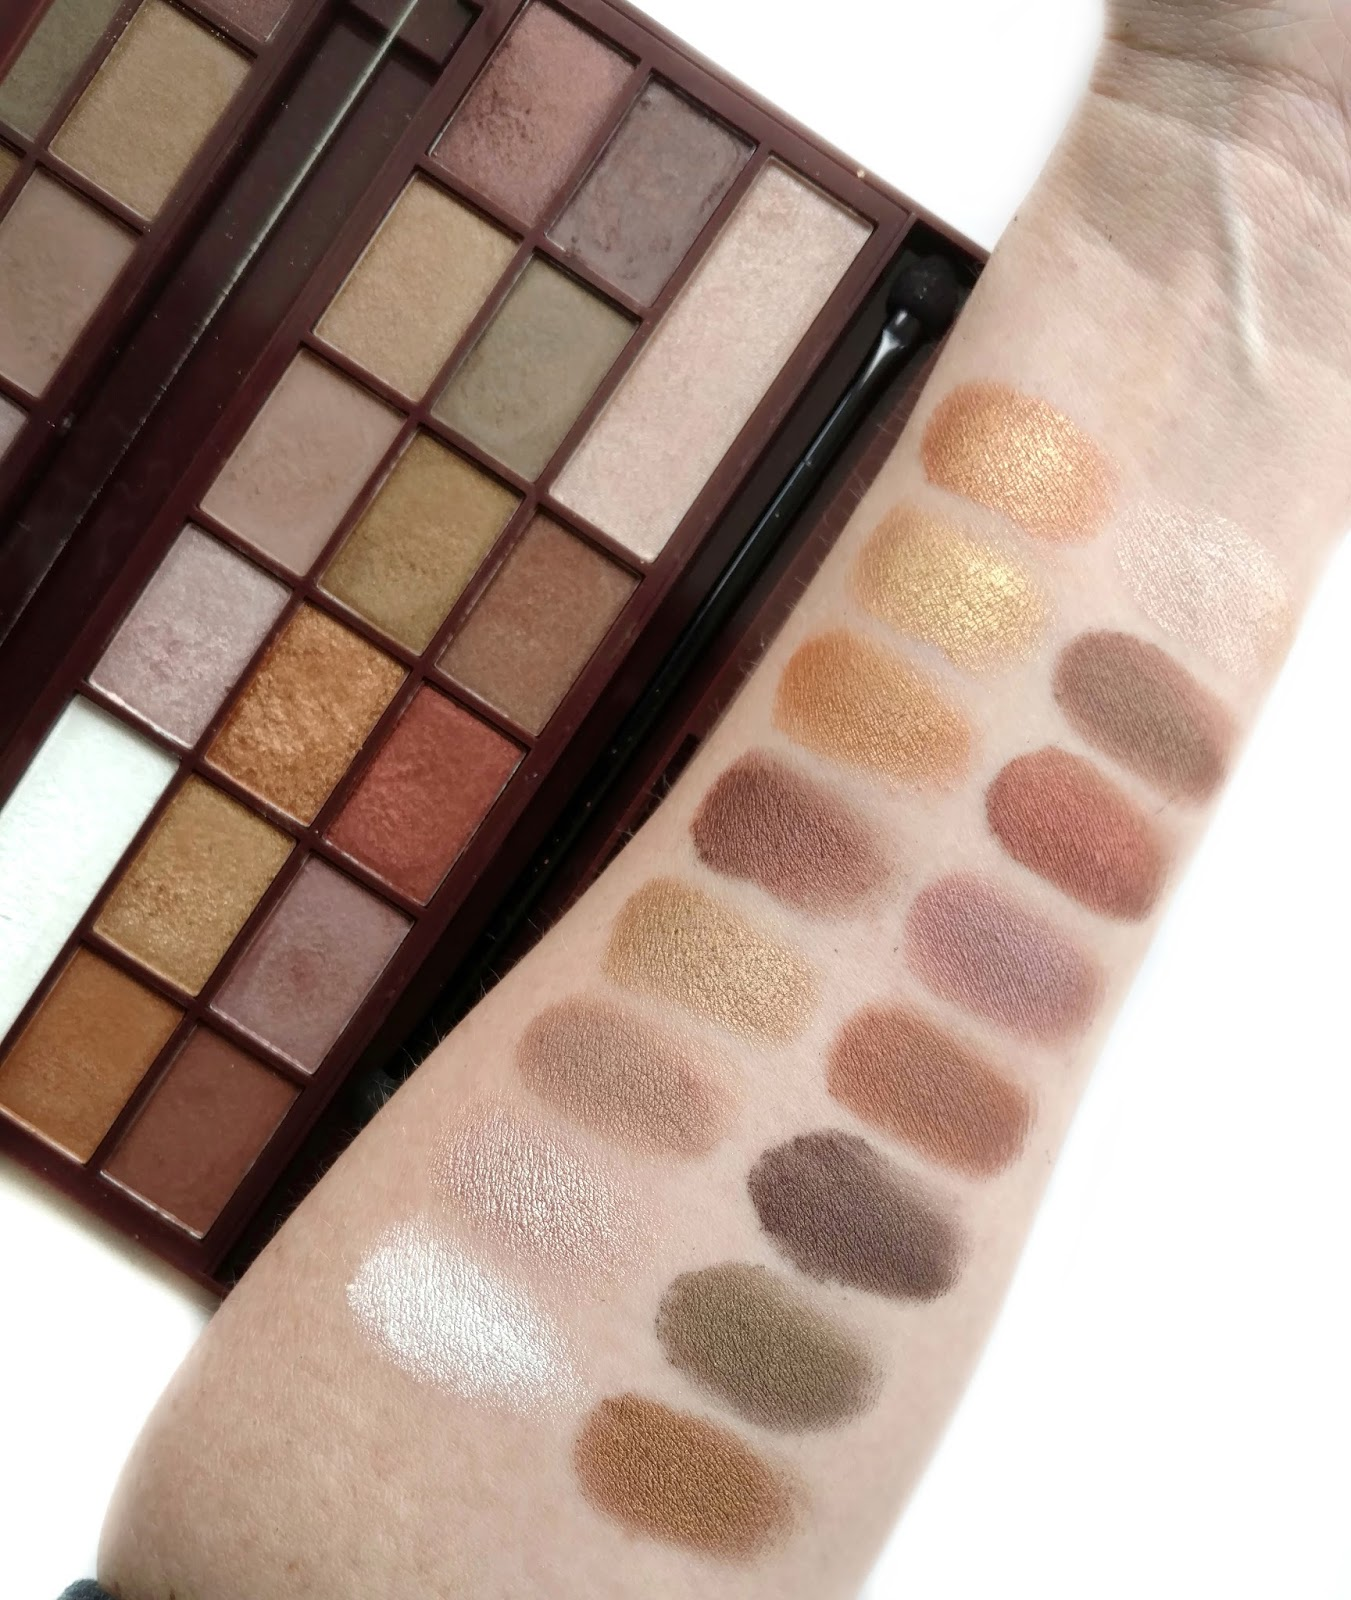 Rose Gold Chocolate Bar Eyeshadow Palette by Revolution Beauty #4